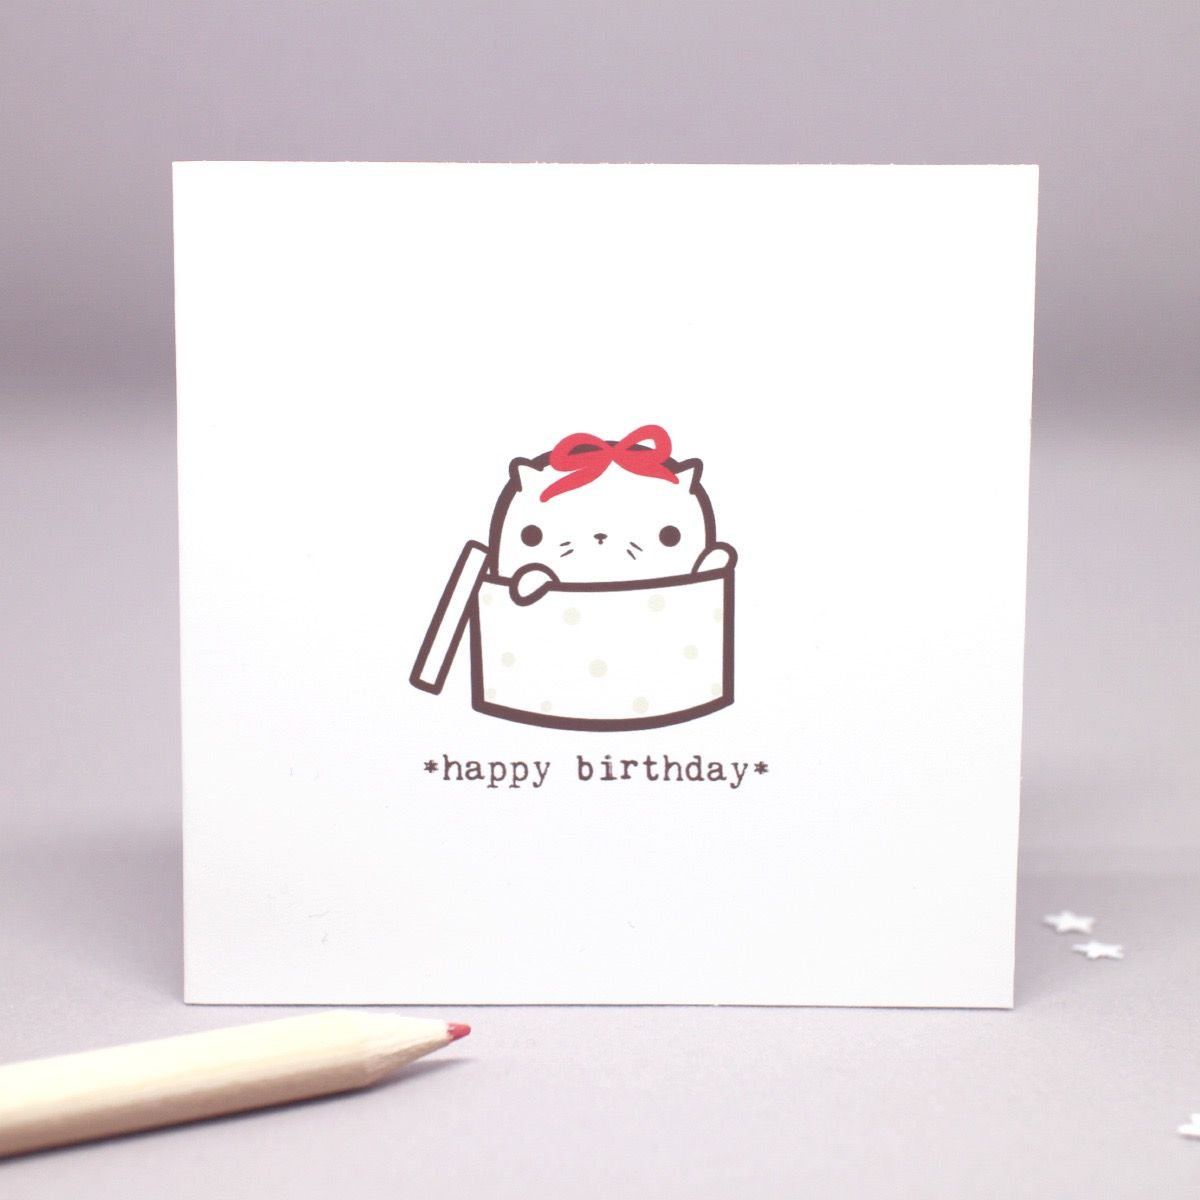 A Little Cat Says Happy Birthday! This Mini Square Greeting Card Is Blank Inside, And Comes With